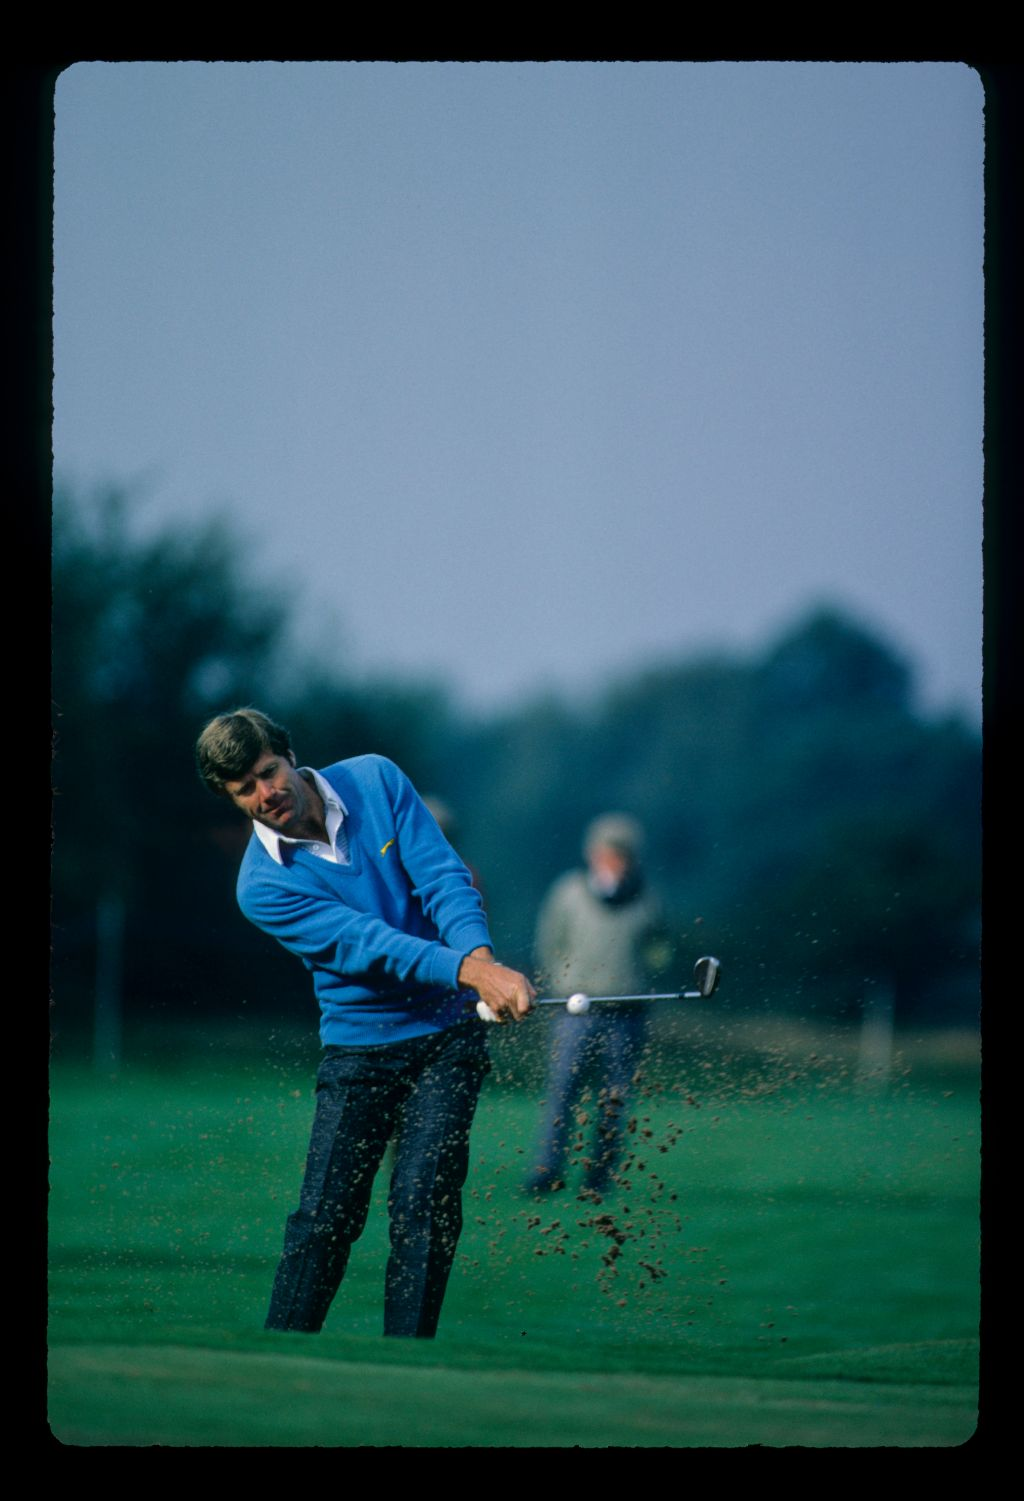 Hugh Baiocchi splashes his ball from a greenside bunker at the Haig Whisky TPC at Moortown